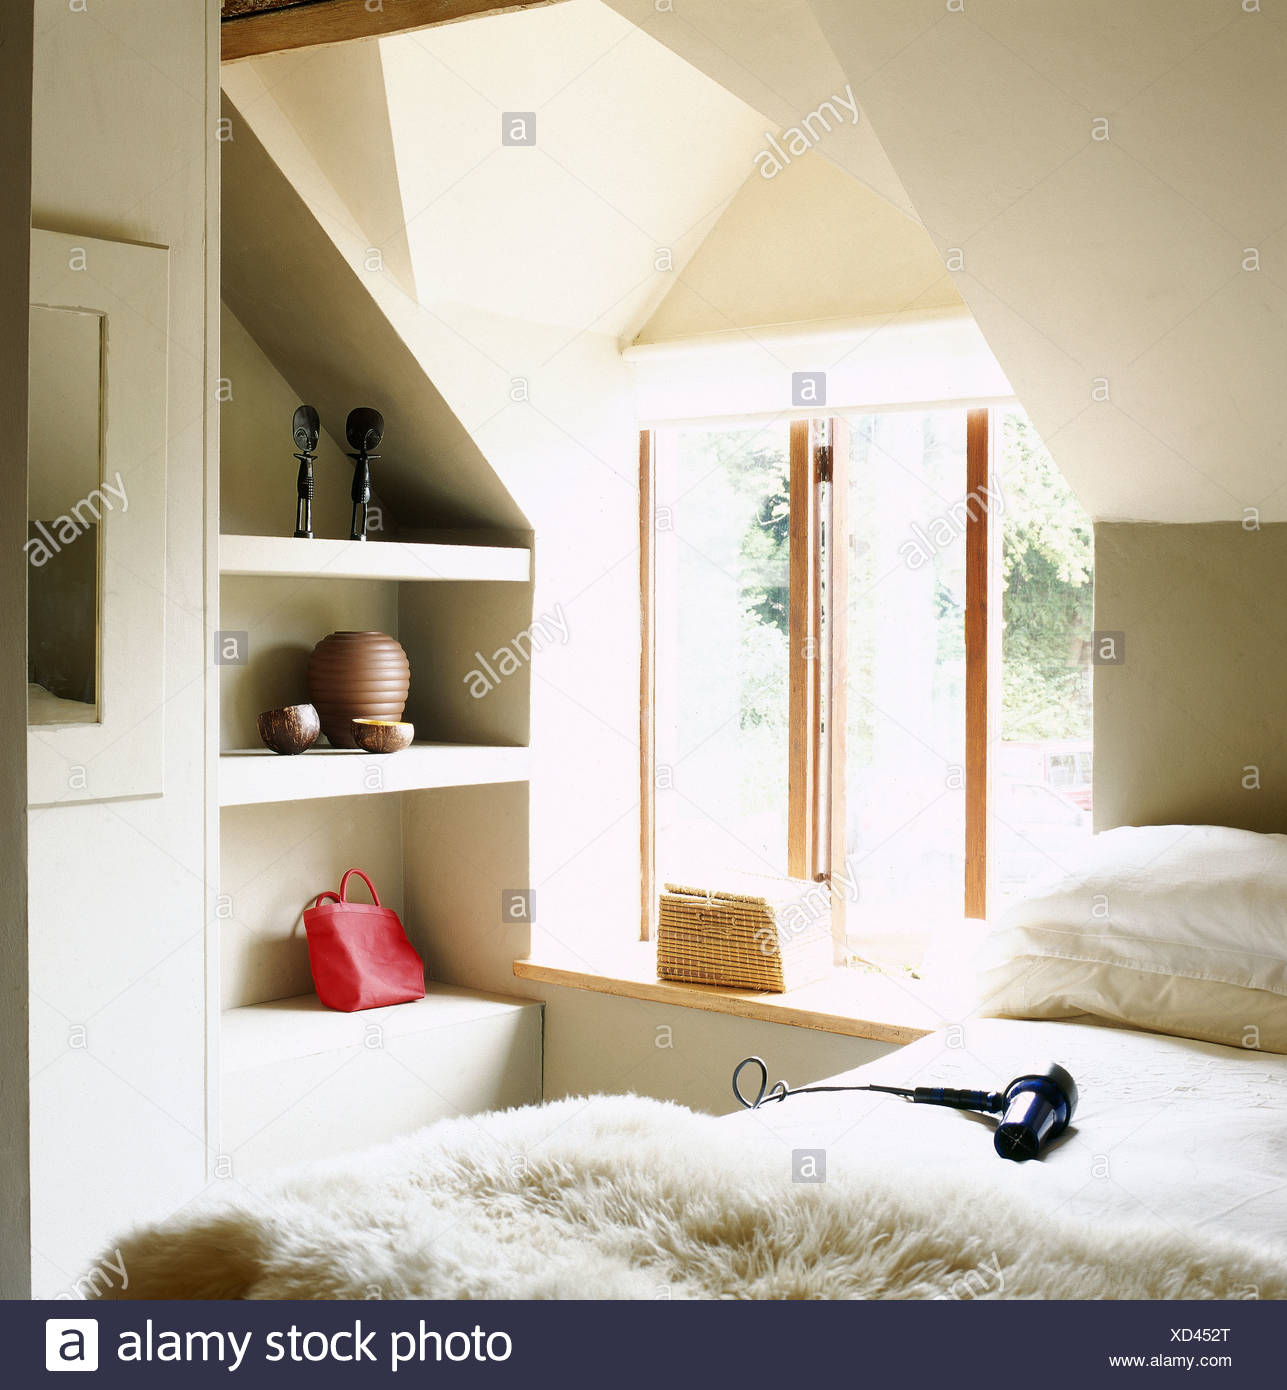 loft style bed queen hairdryer on bed with sheepskin through in modern loft style bedroom open alcove shelving